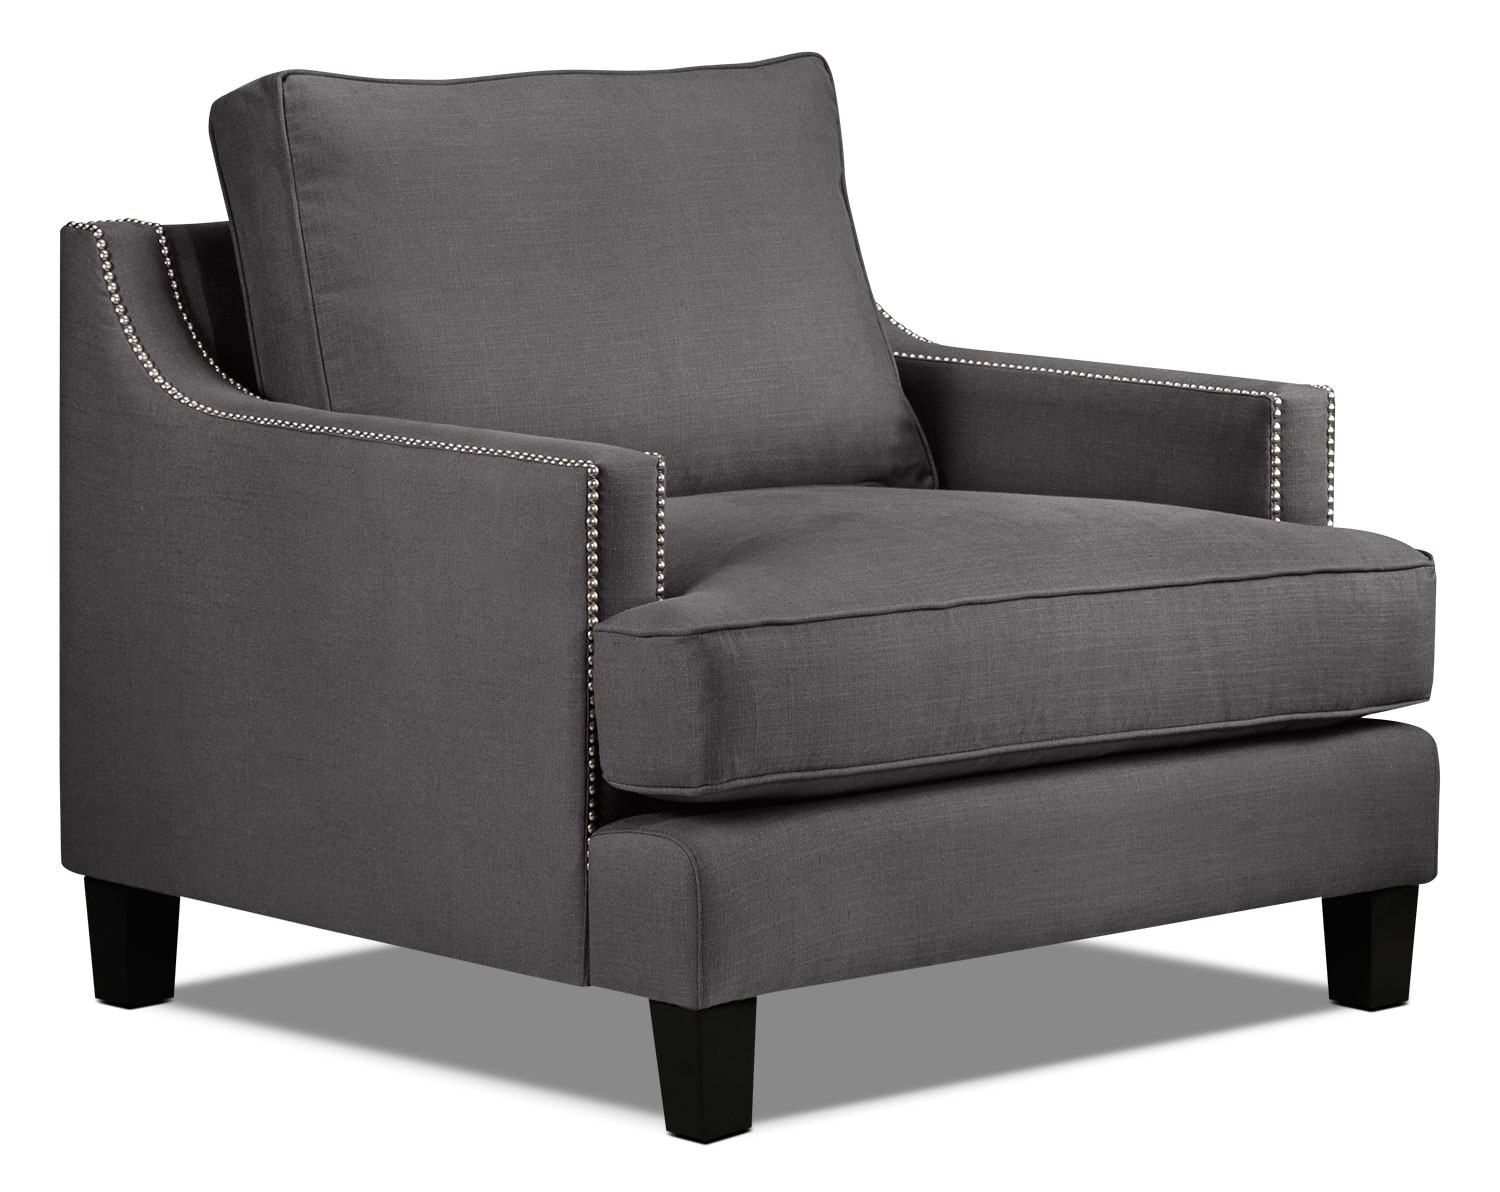 Jules Chair - Charcoal